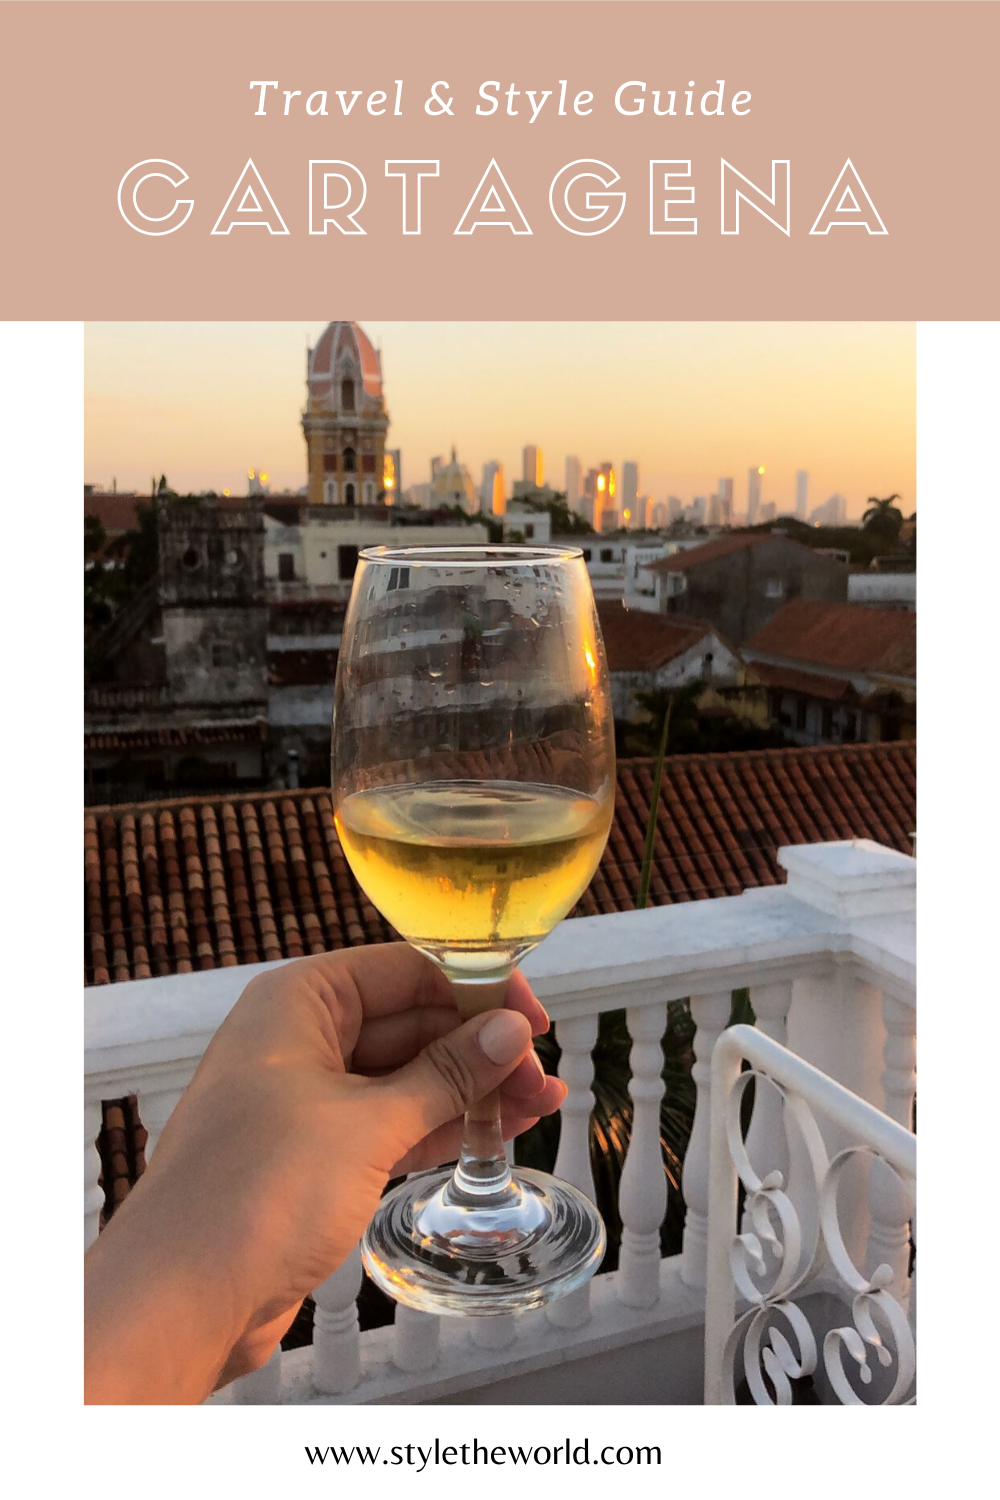 Travel & Style Guide for Visiting Cartagena Colombia | Where to Stay, What to Do, and What to Pack | by Style the World | #longweekendtrip #cartagenacolombia #cartagenaguide